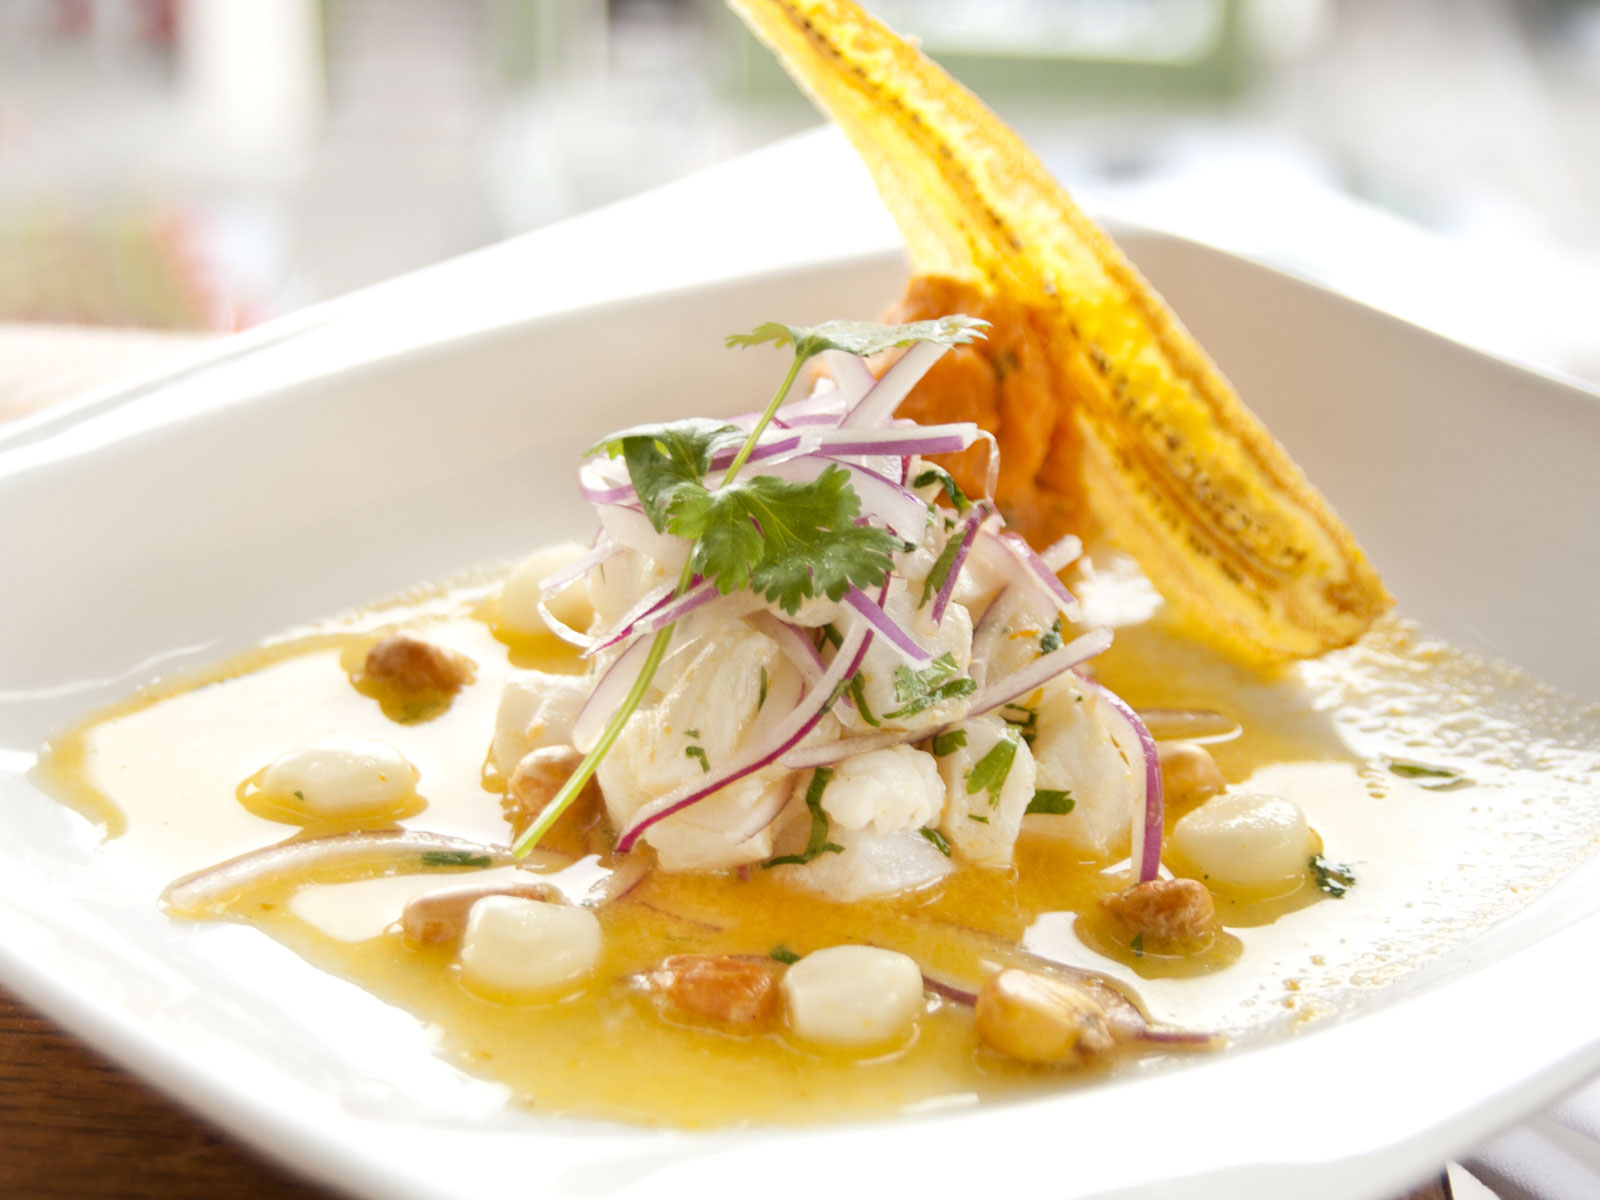 8 Things to Remember When Preparing Ceviche at Home